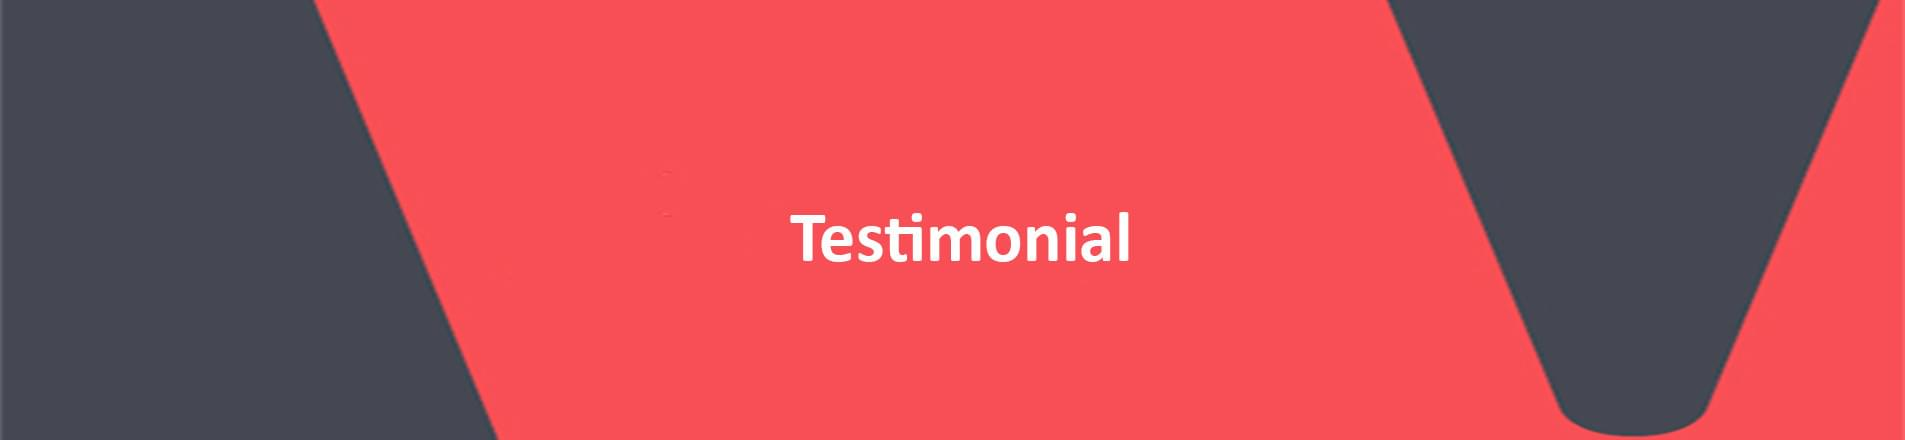 Image of the word testimonial on a red background